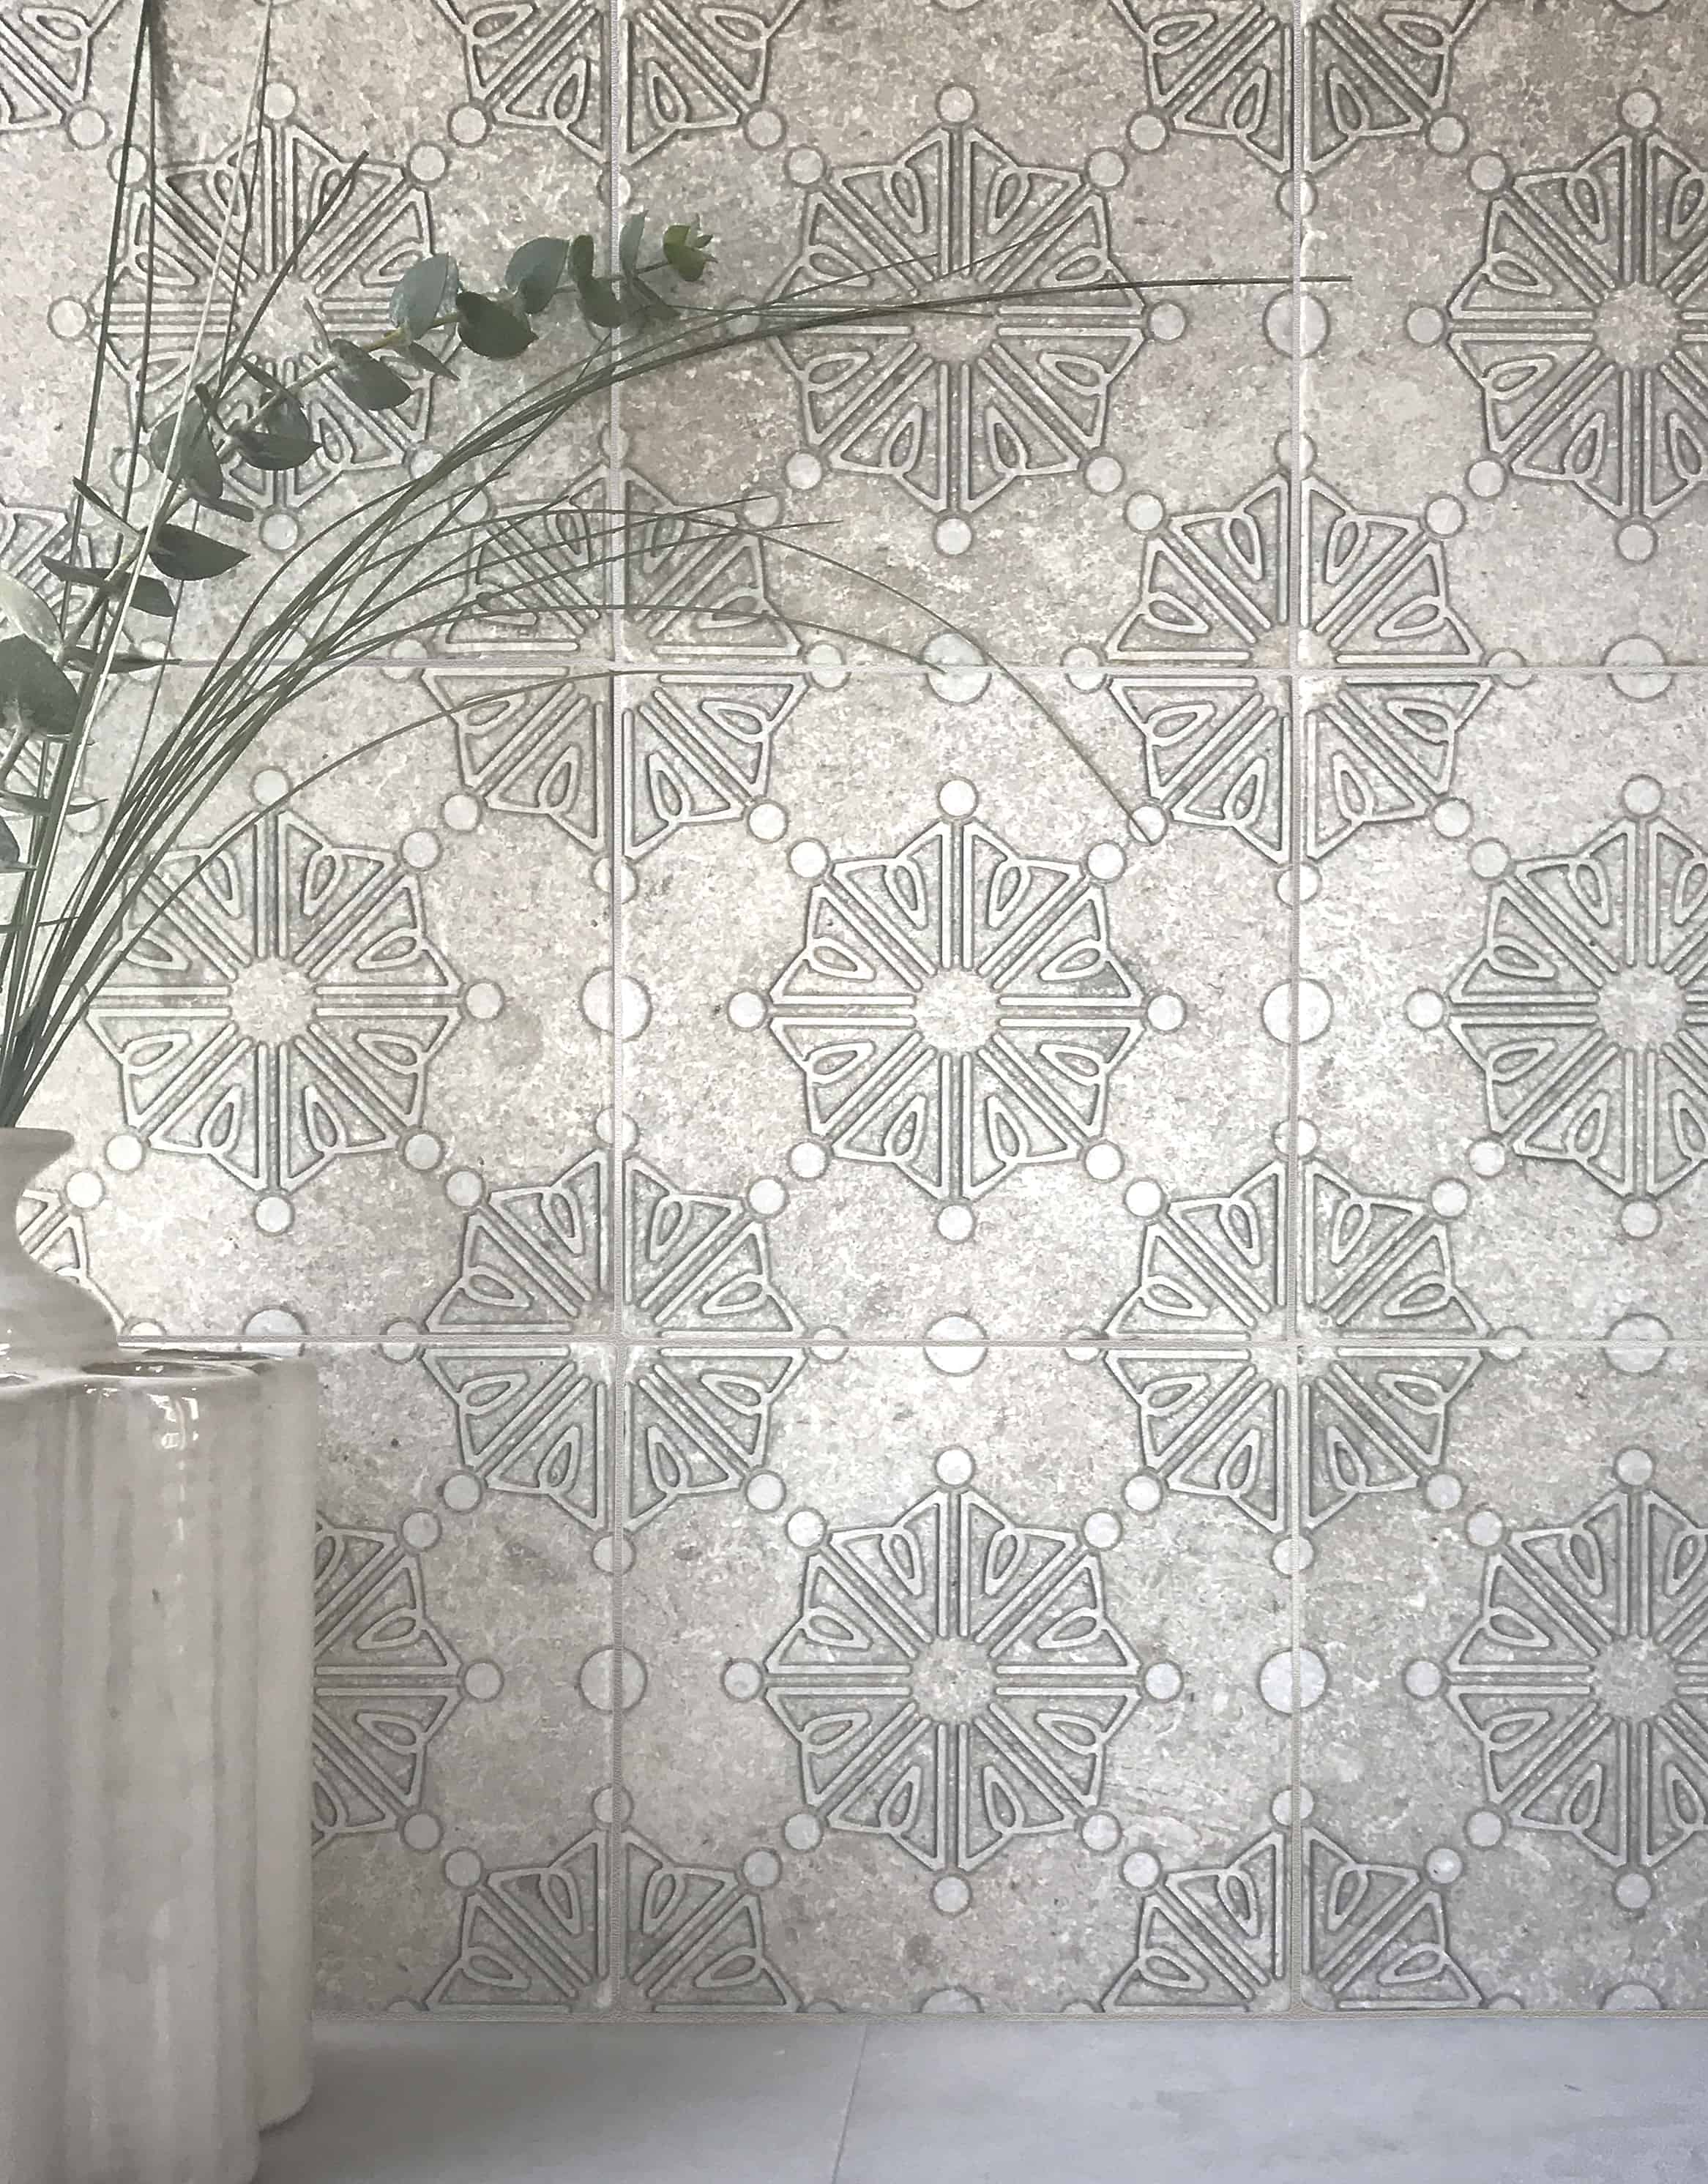 Dahlia pattern Tile in the Pearl color on Perle Blanc limestone as a wall with a fern